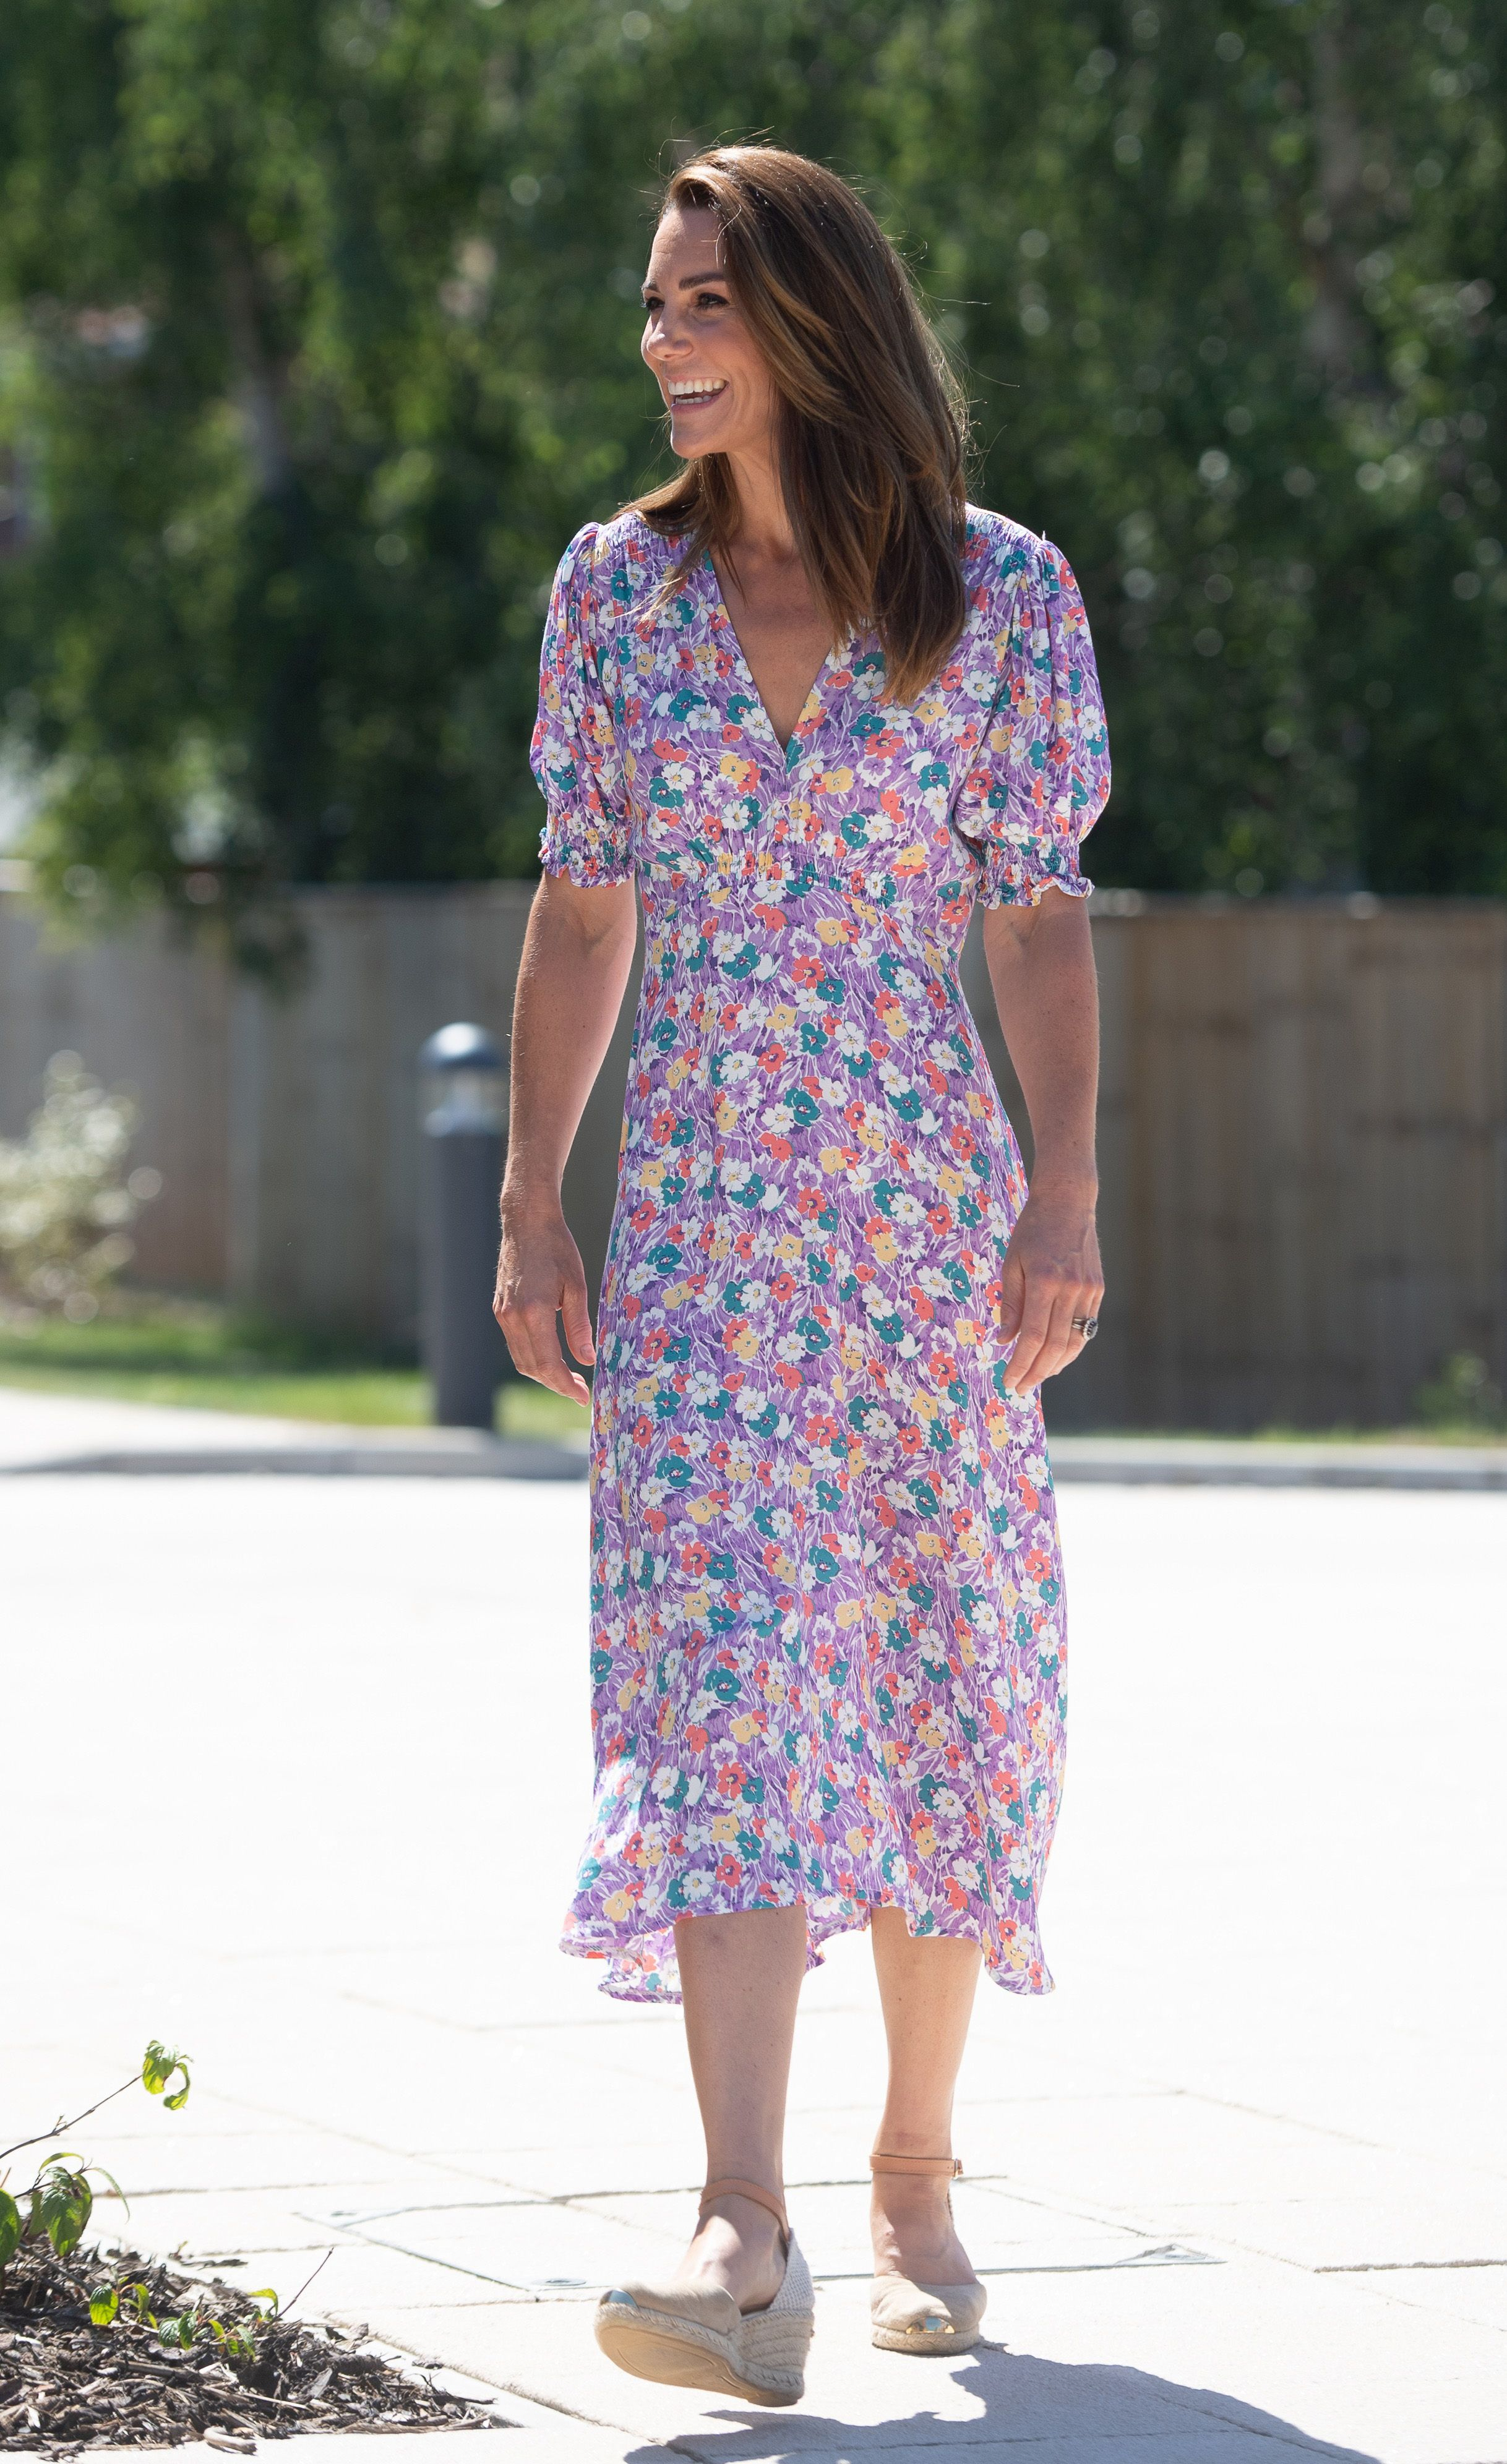 kate middleton s best fashion looks duchess of cambridge s chic outfits duchess of cambridge s chic outfits